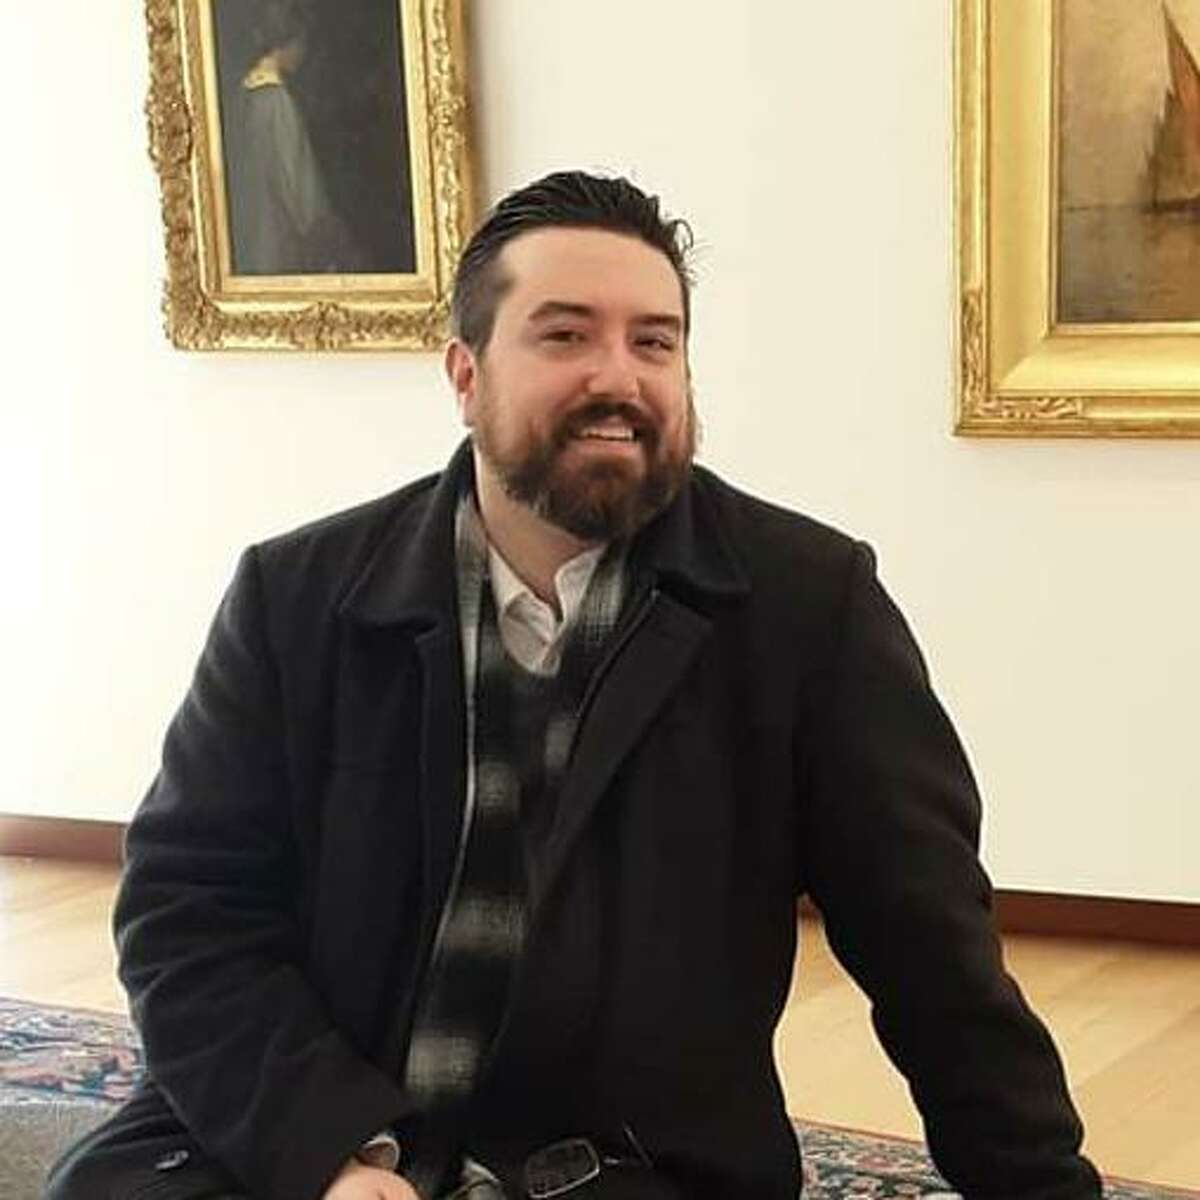 Democrat Jeremy Kincaid was defeated in Tuesday's primary. He ran as petitioning candidate for the Torrington Board of Education.